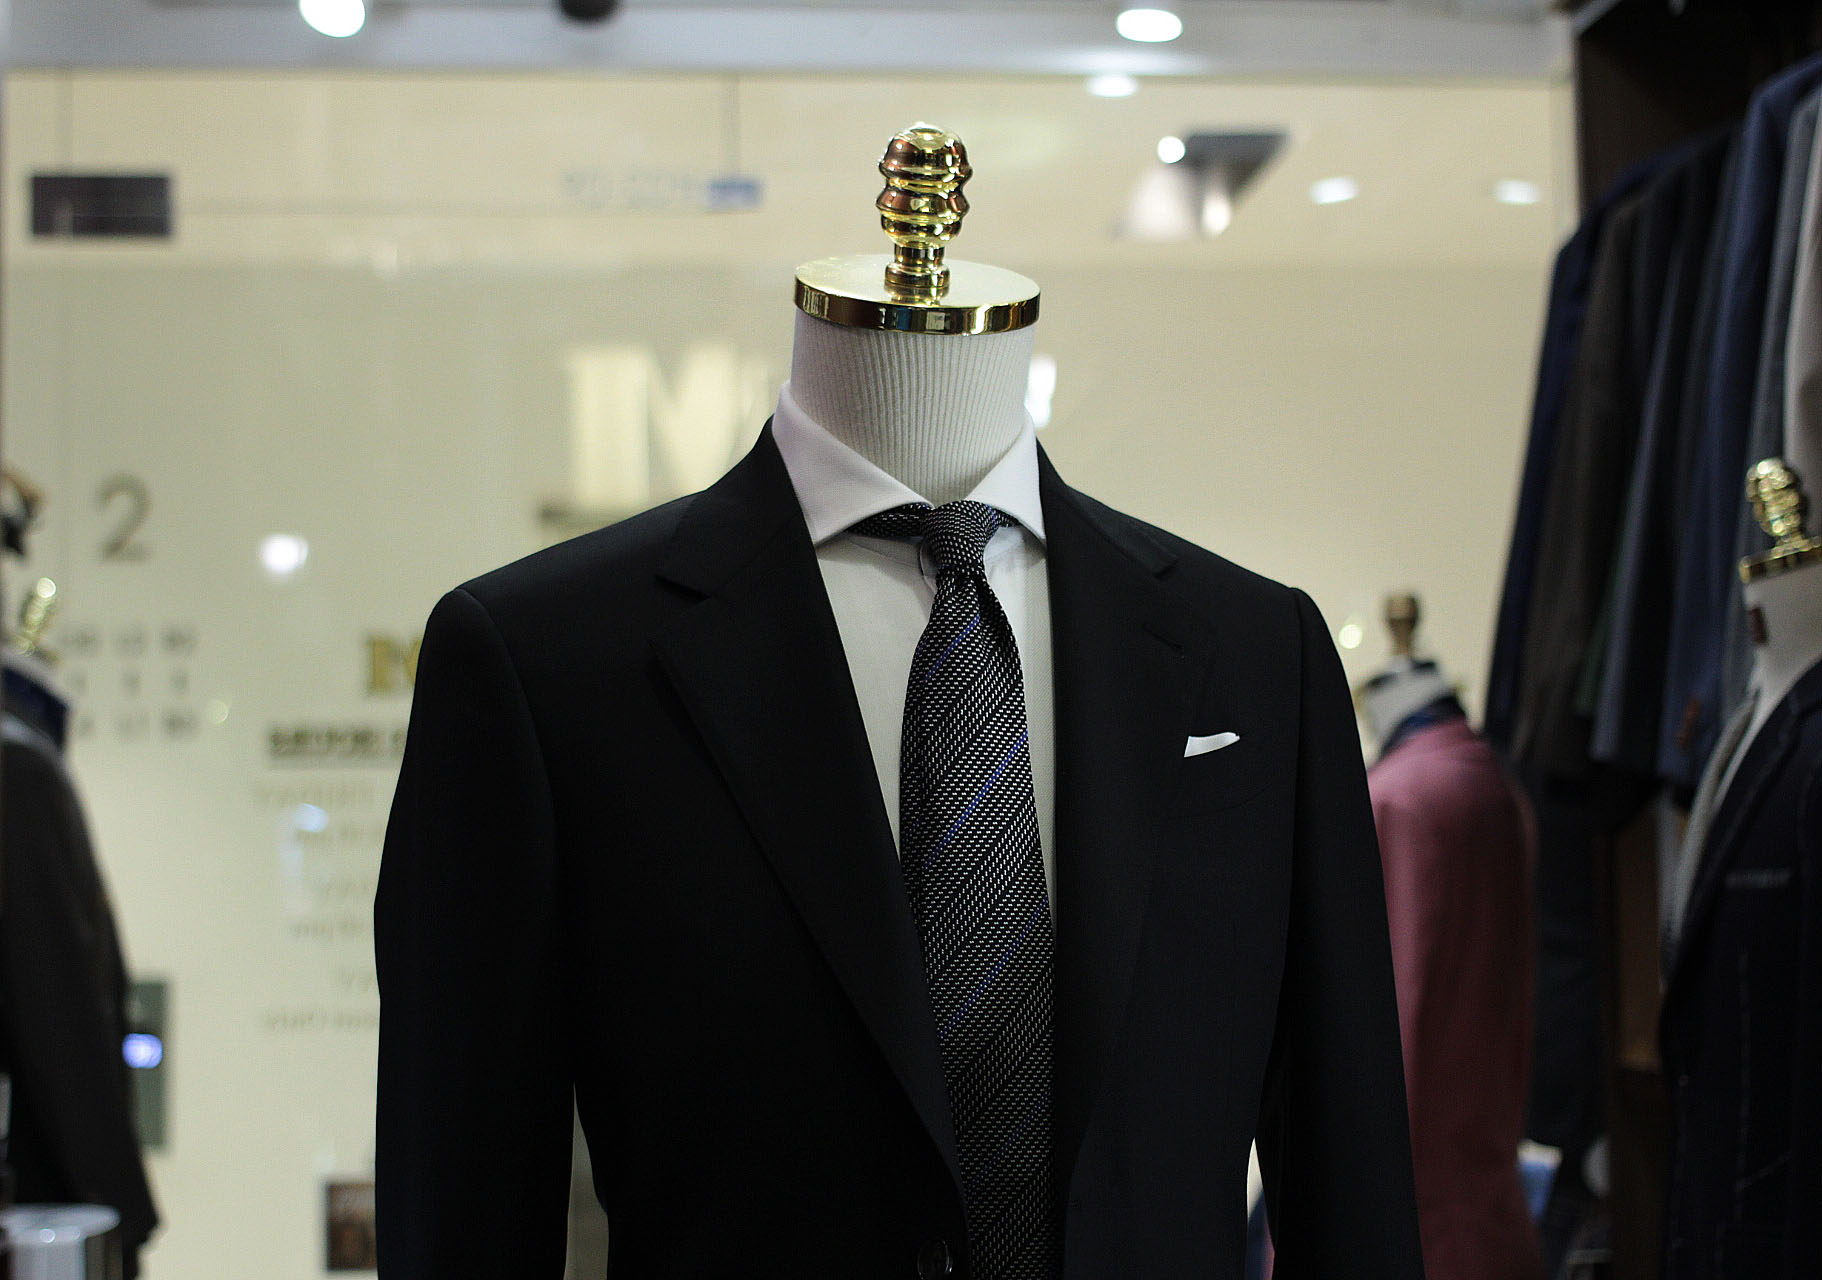 Mr Wick | Babayaga | Made Suits | Tailor Made Suits Singapore | Holland & Sherry FIESTA IV Side.JPG